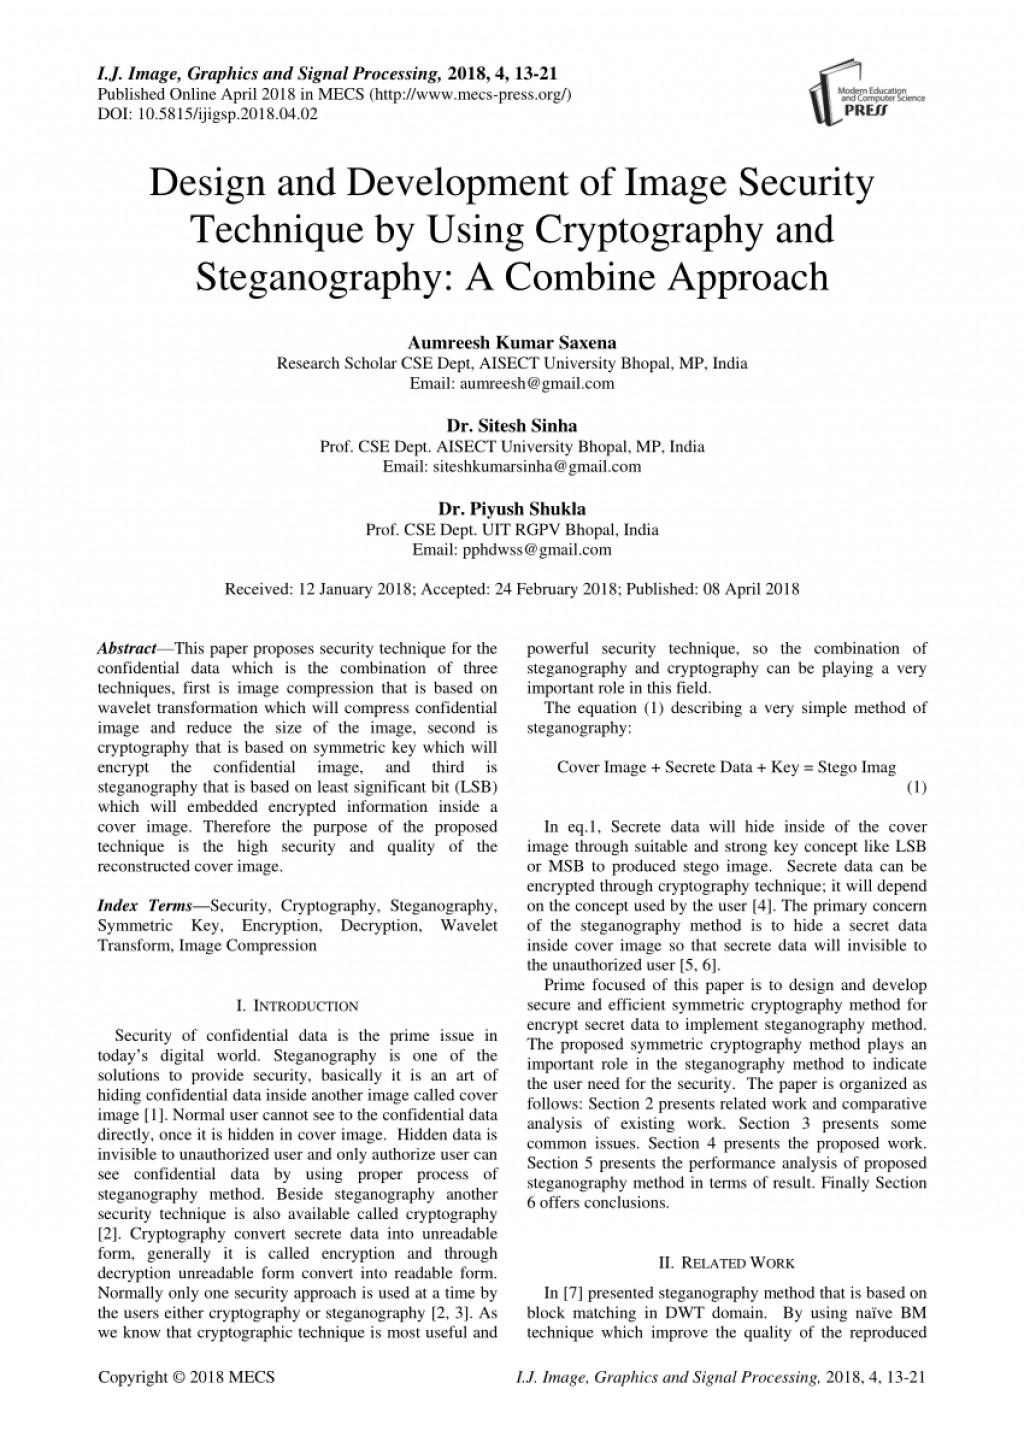 005 Cryptography Researchs Pdf Free Download Largepreview Striking Research Papers Large